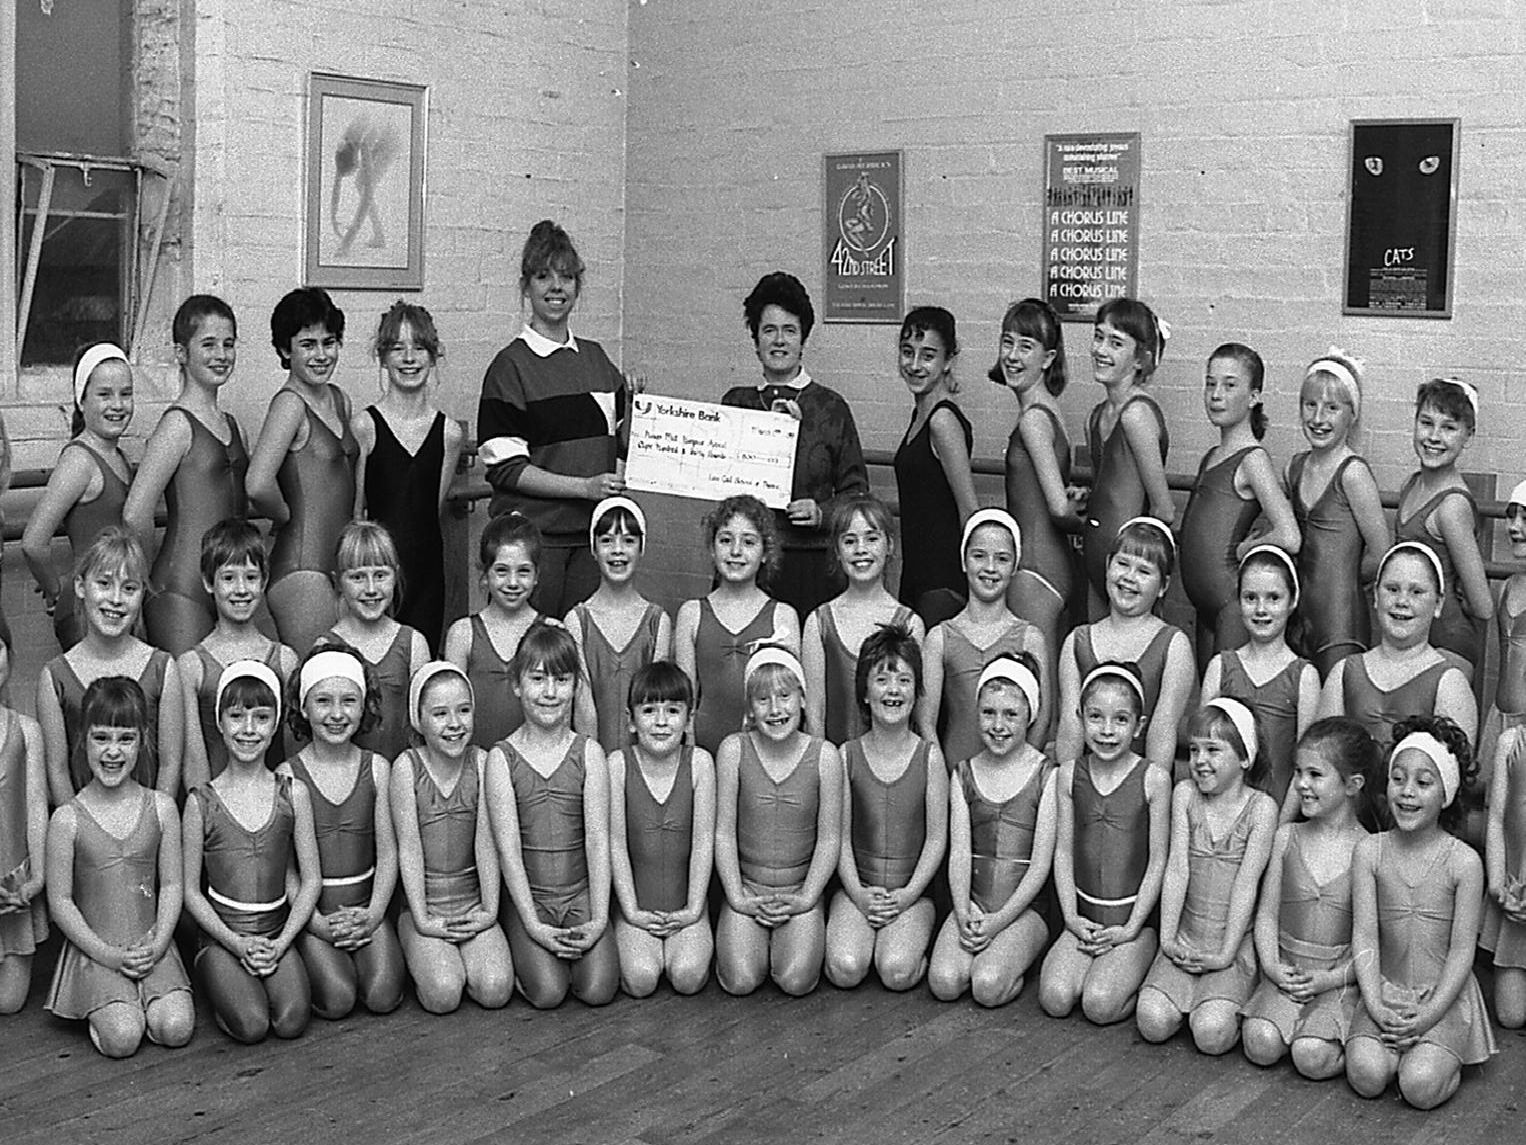 1989: This fabulous group shot features Lisa Gails School of Dance during a cheque presentation. Are you on this picture?